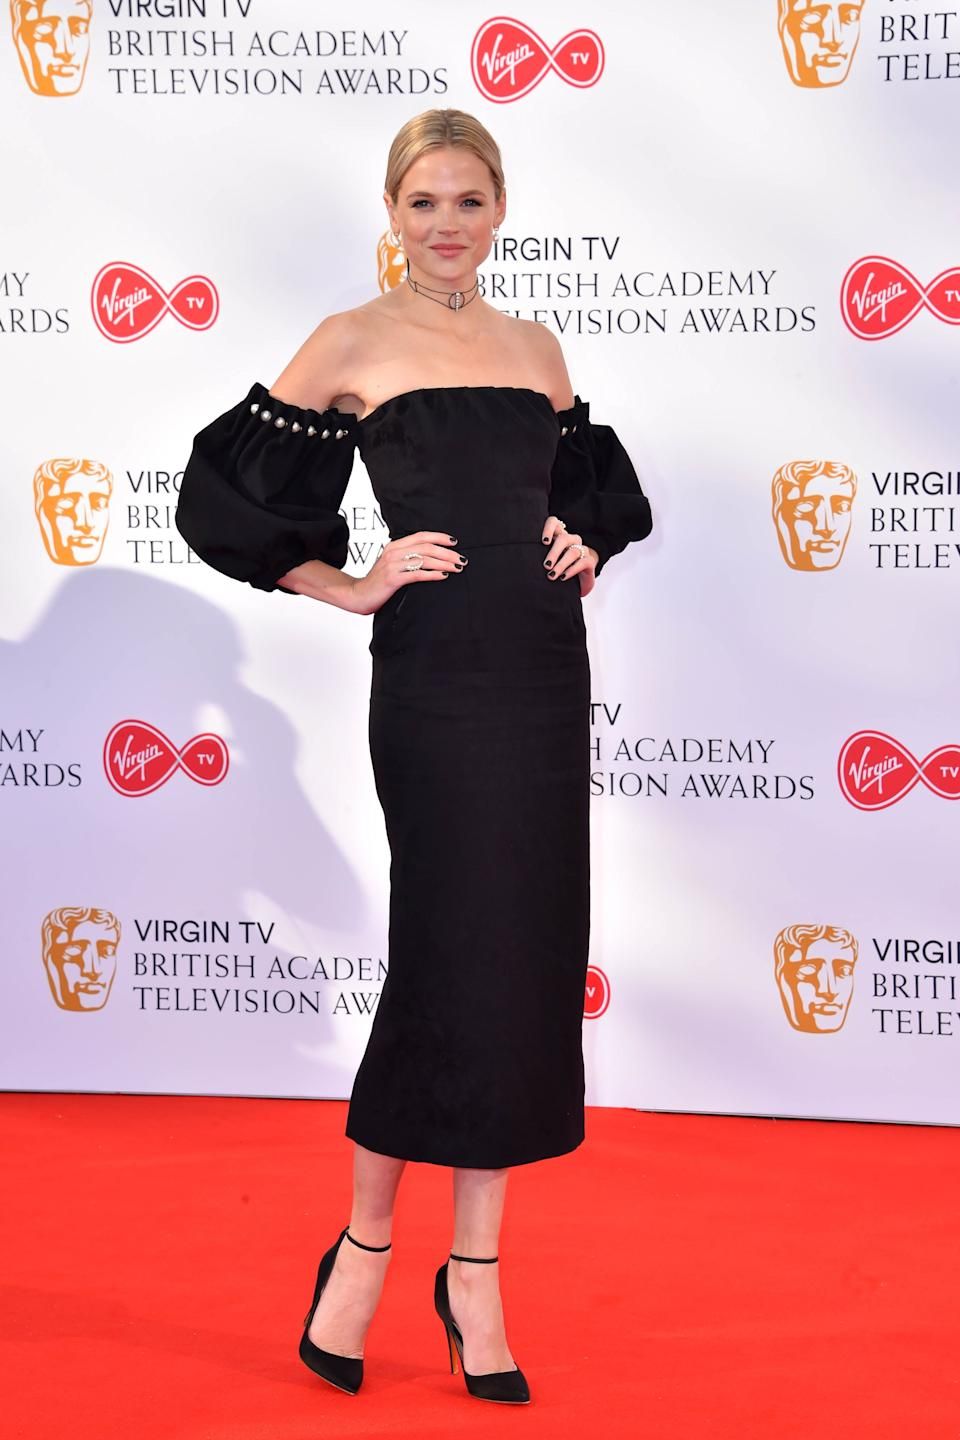 Gabriella Wilde attending the Virgin TV British Academy Television Awards 2018 held at the Royal Festival Hall, Southbank Centre, London.